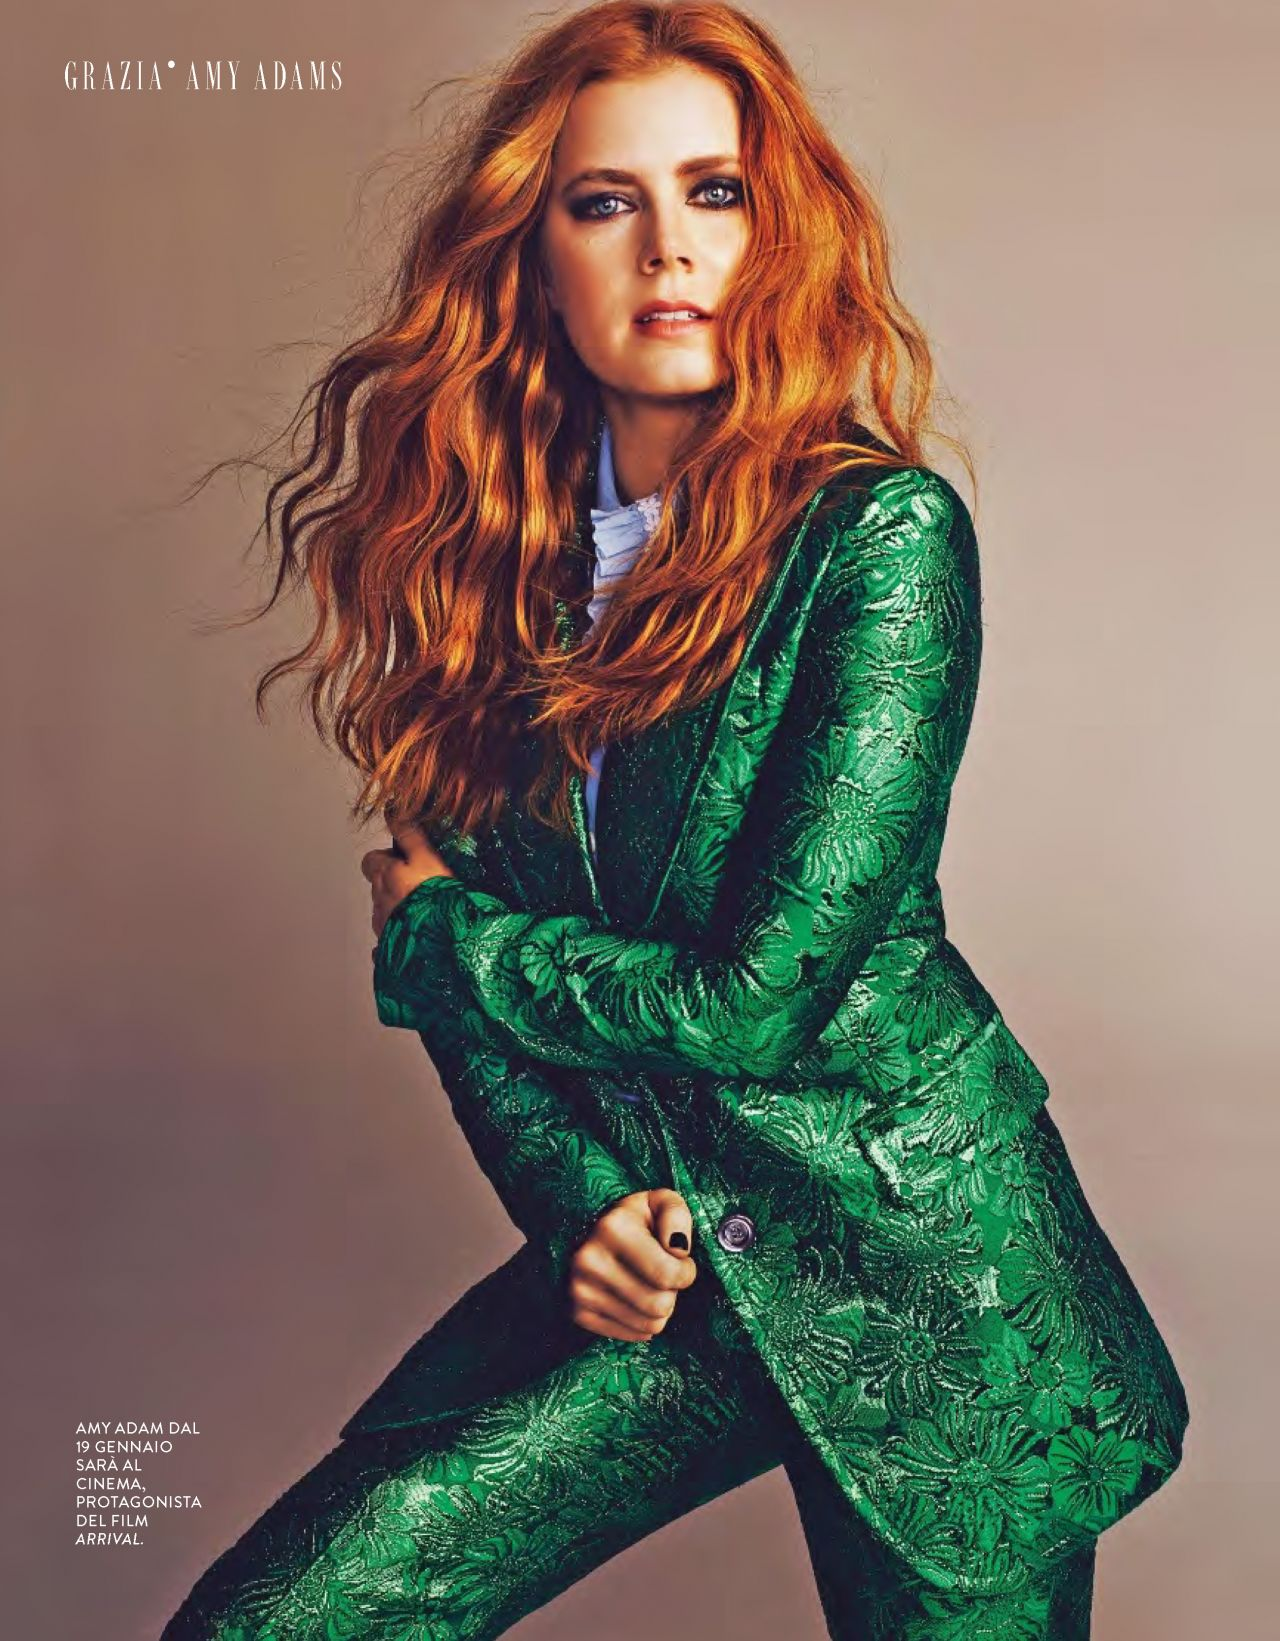 Amy Adams Grazia Magazine